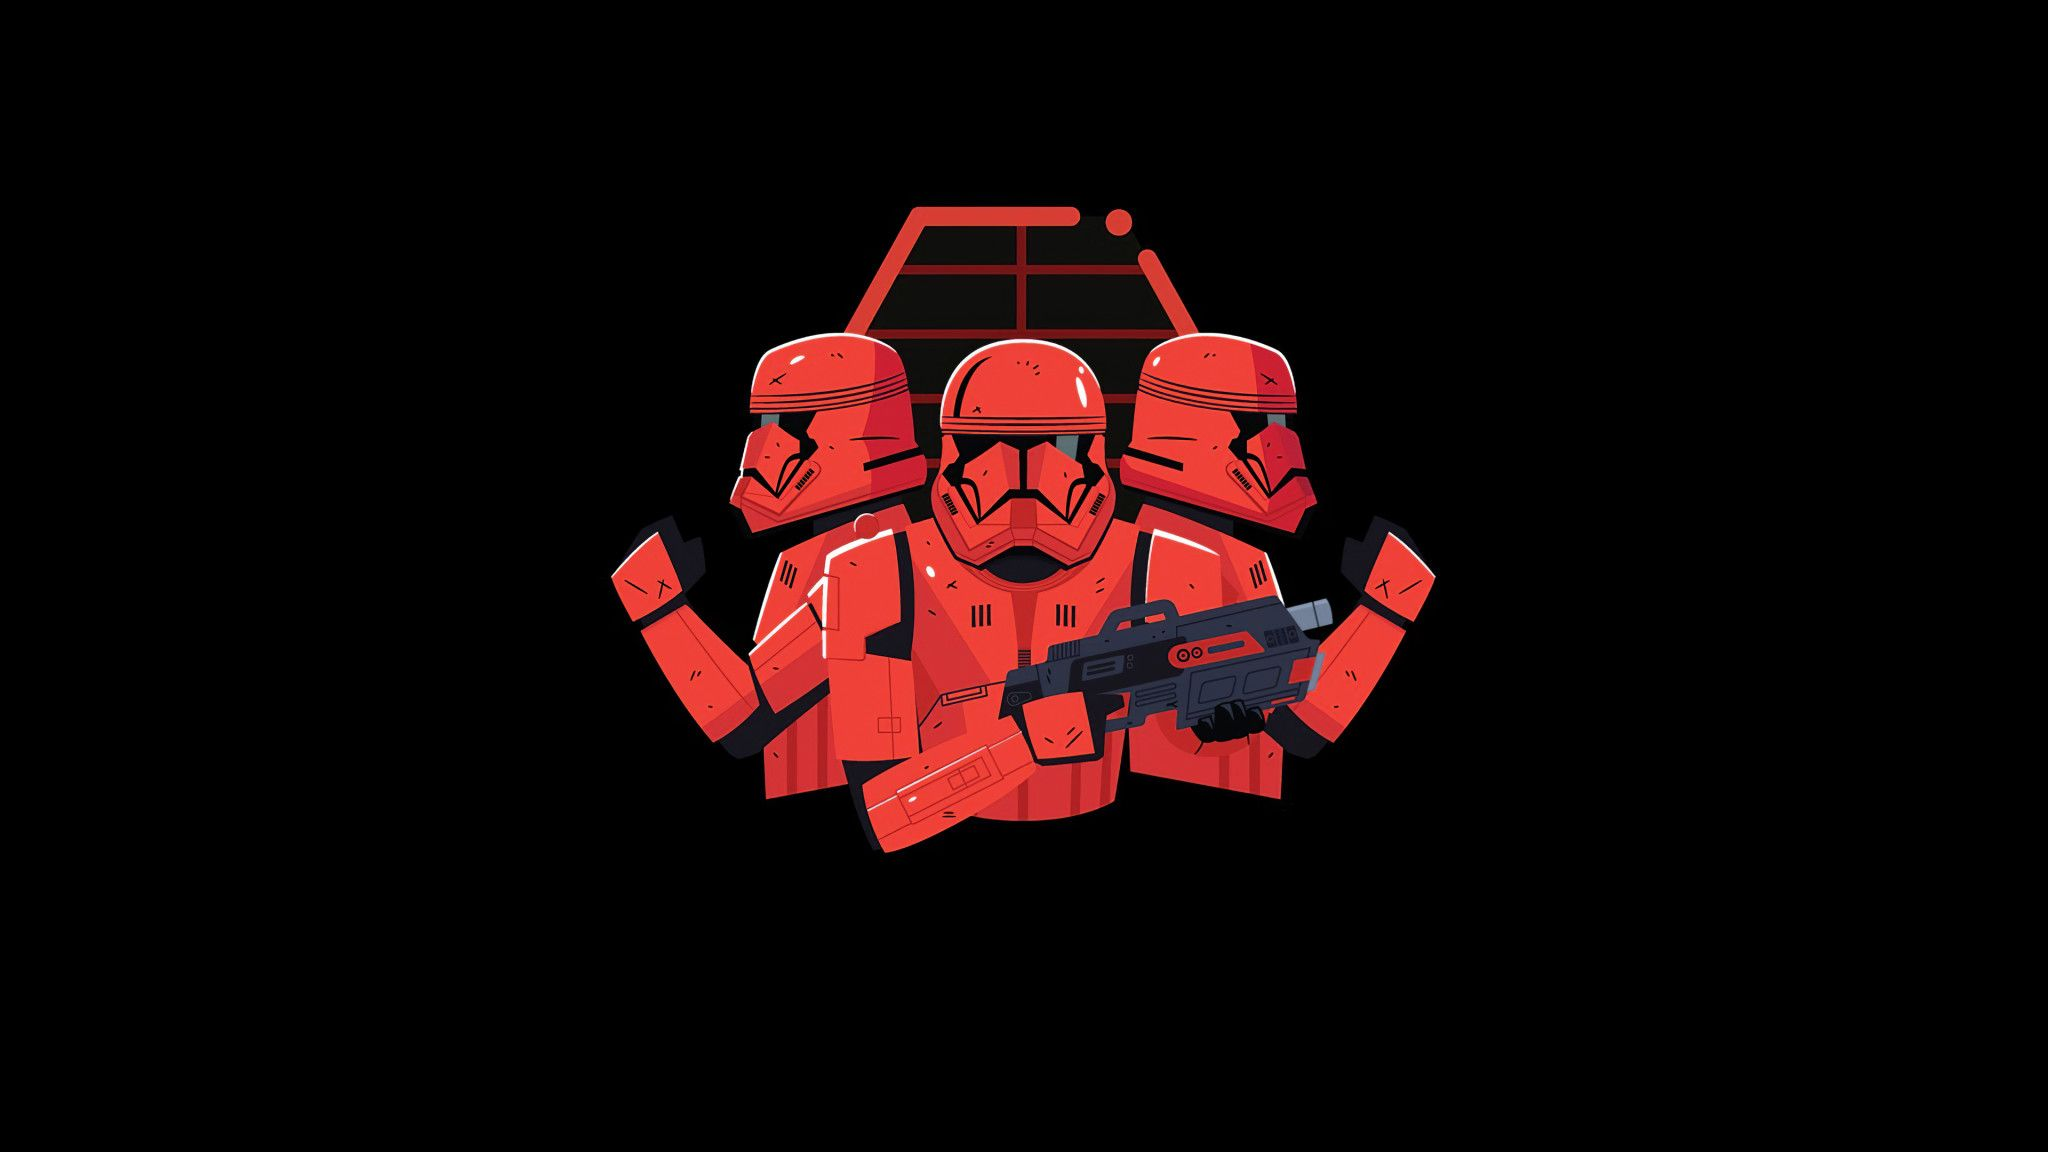 2048x1152 Star Wars Wallpapers Top Free 2048x1152 Star Wars Backgrounds Wallpaperaccess